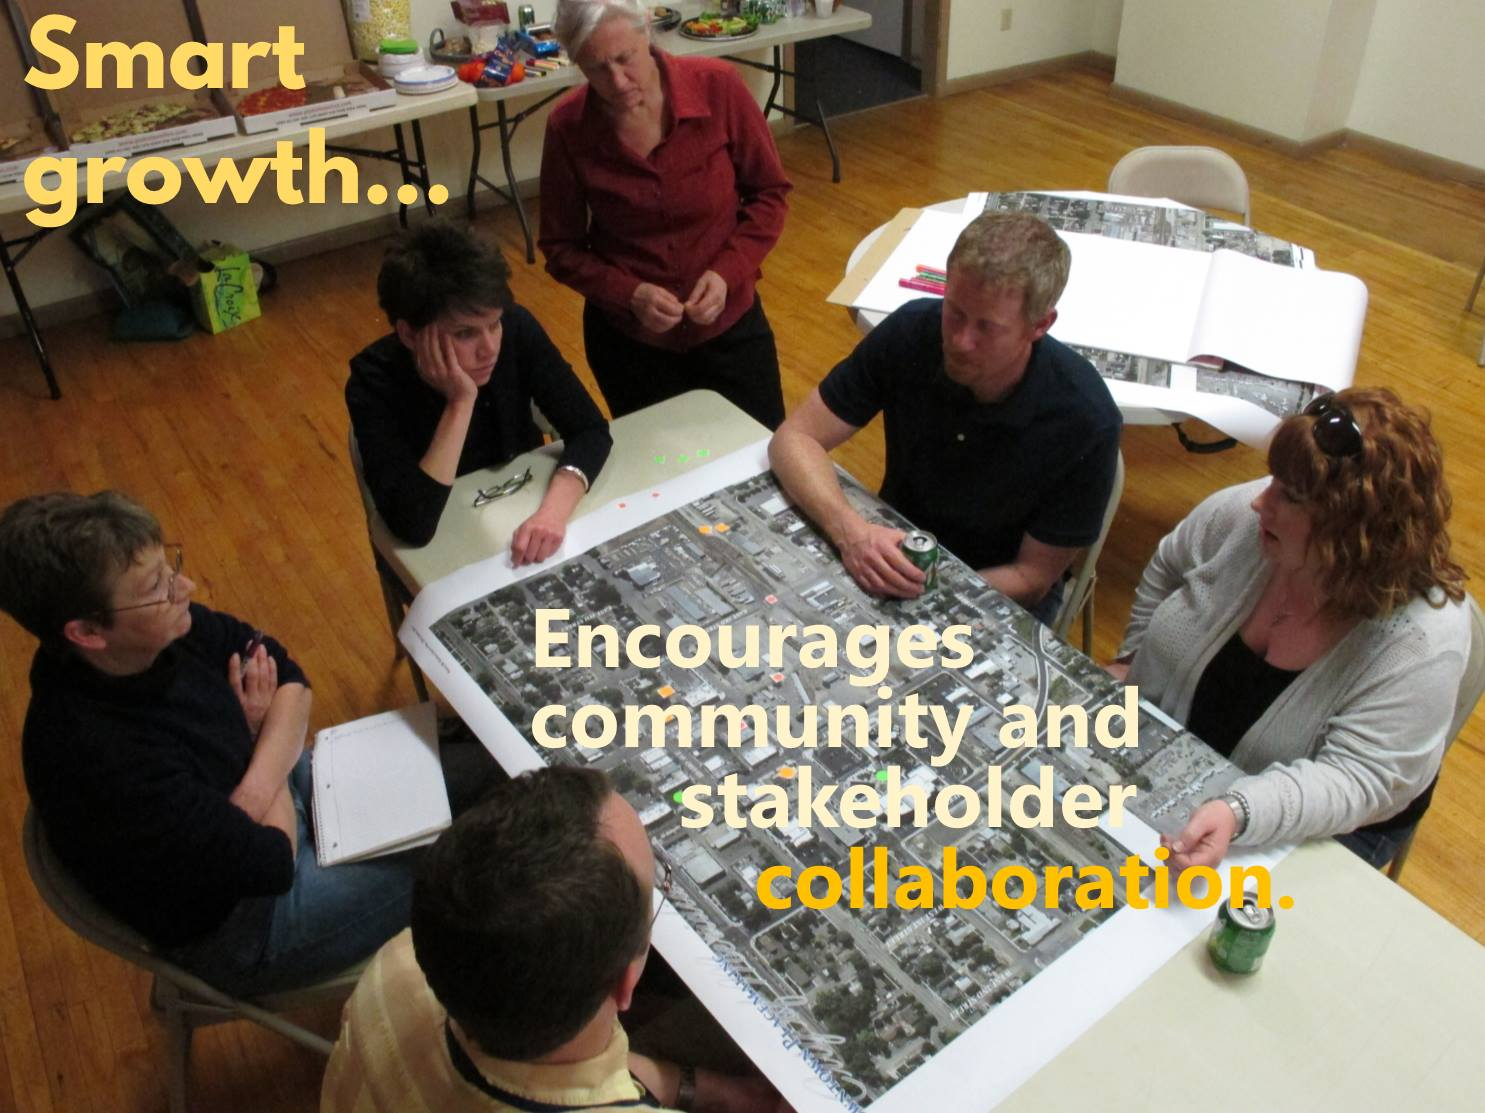 Smart Growth collaboration